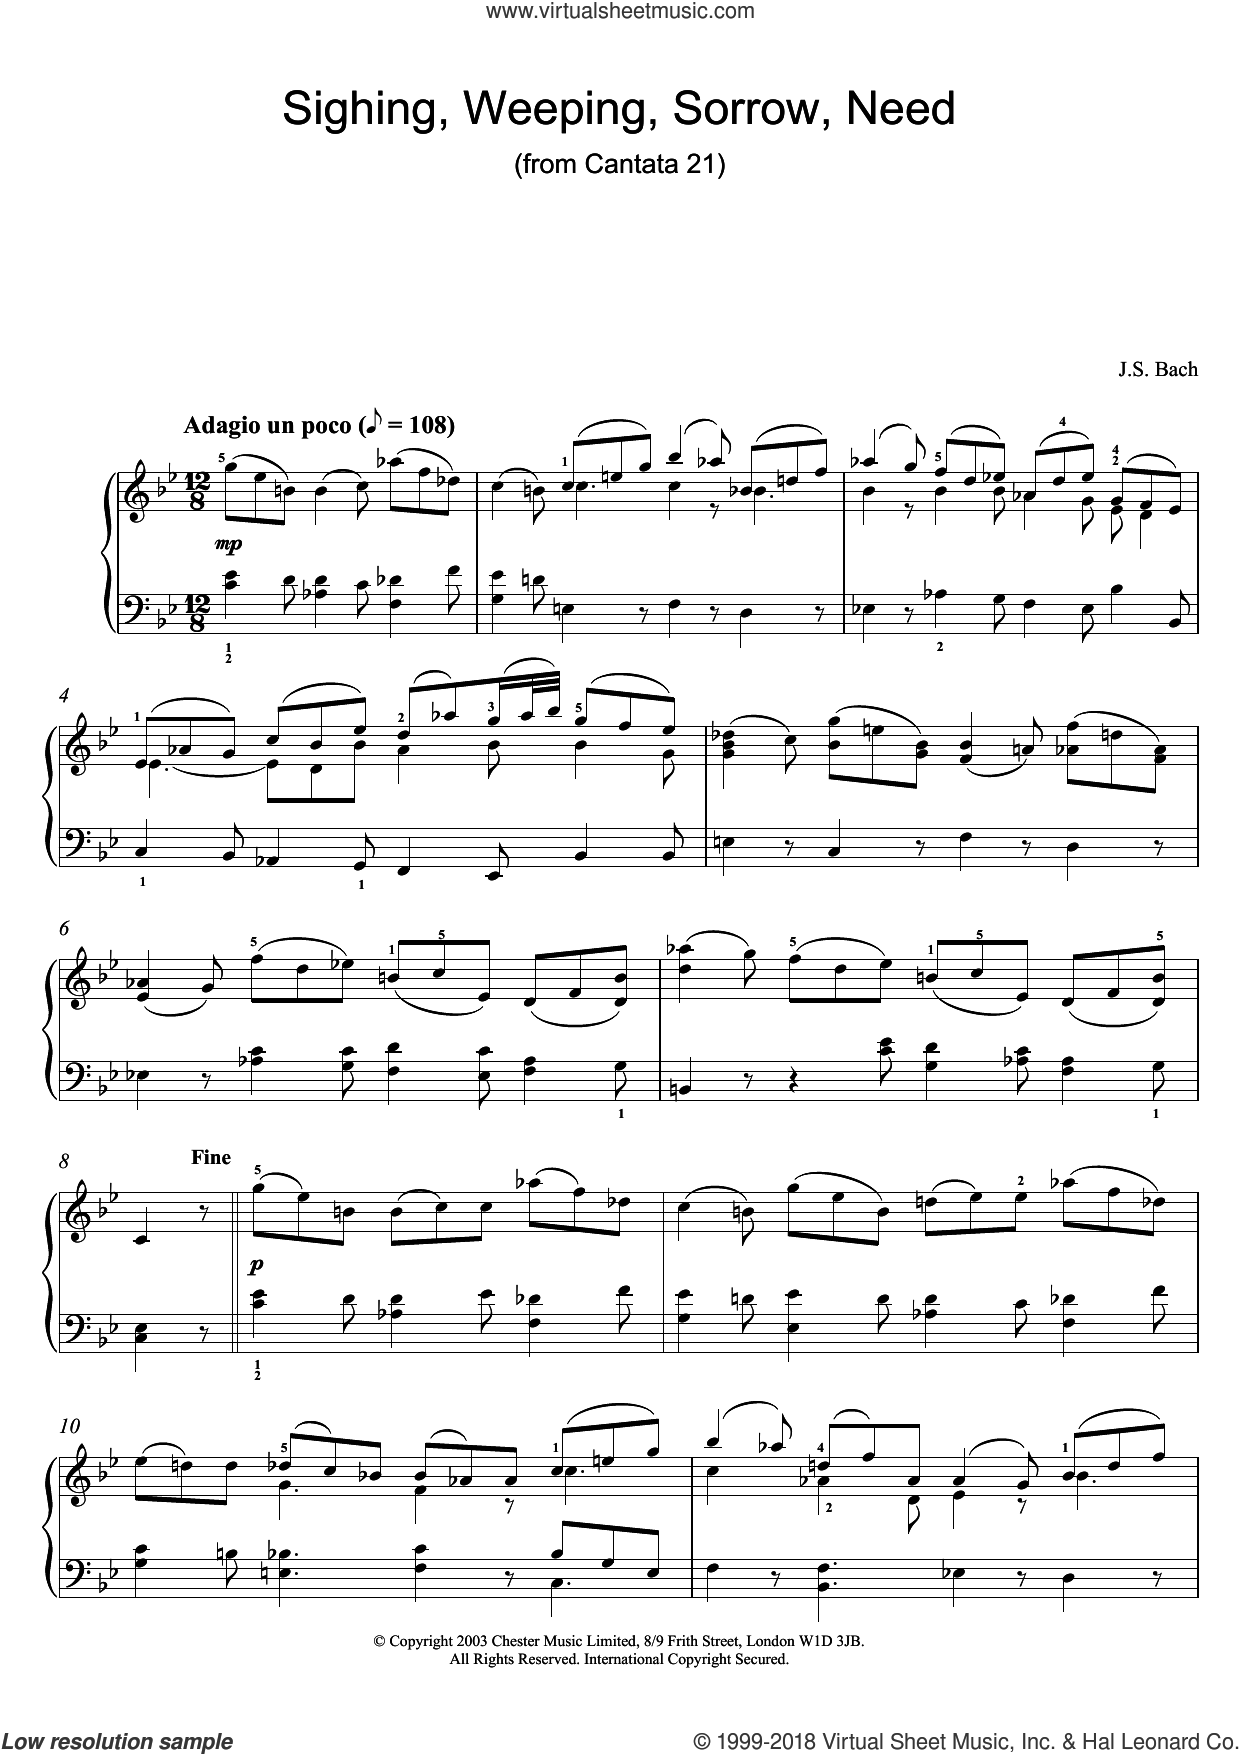 Sighing, Weeping, Sorrow, Need (from Cantata 21) sheet music for piano solo by Johann Sebastian Bach, classical score, intermediate skill level